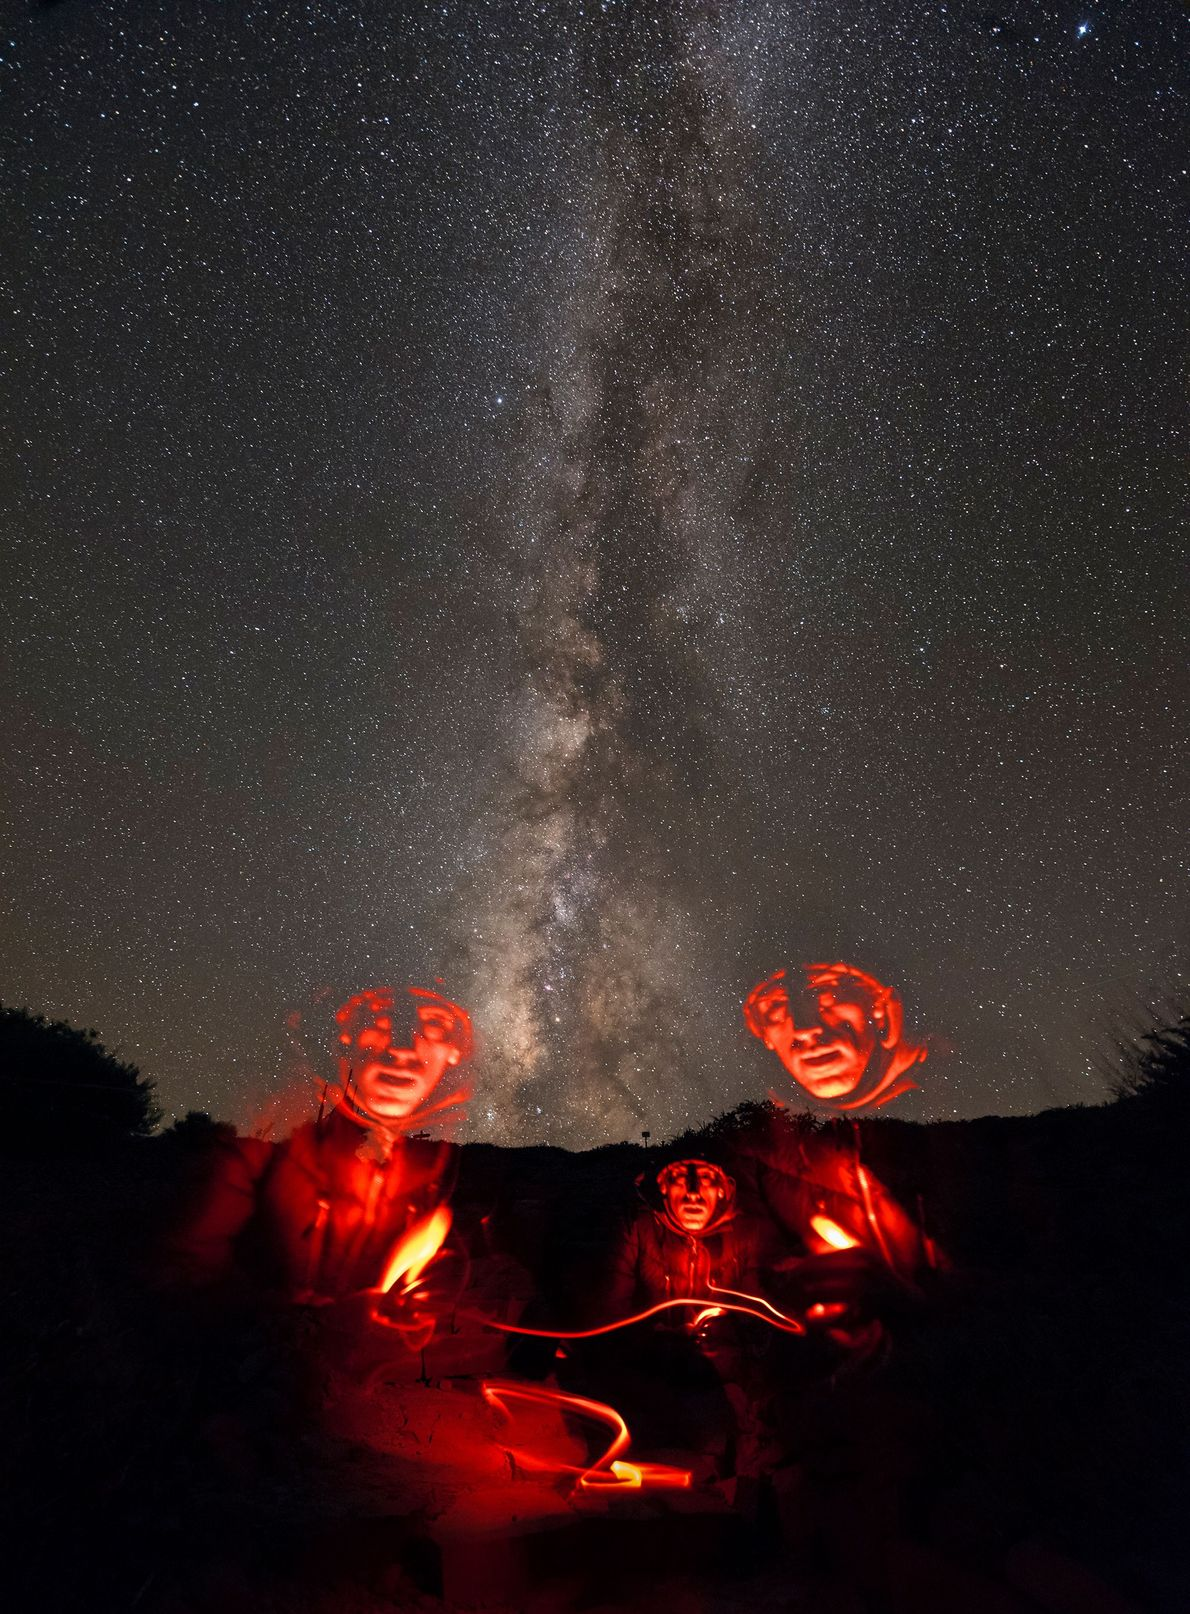 A photographer takes a self-portrait under the Milky Way, using a long exposure to capture his ...